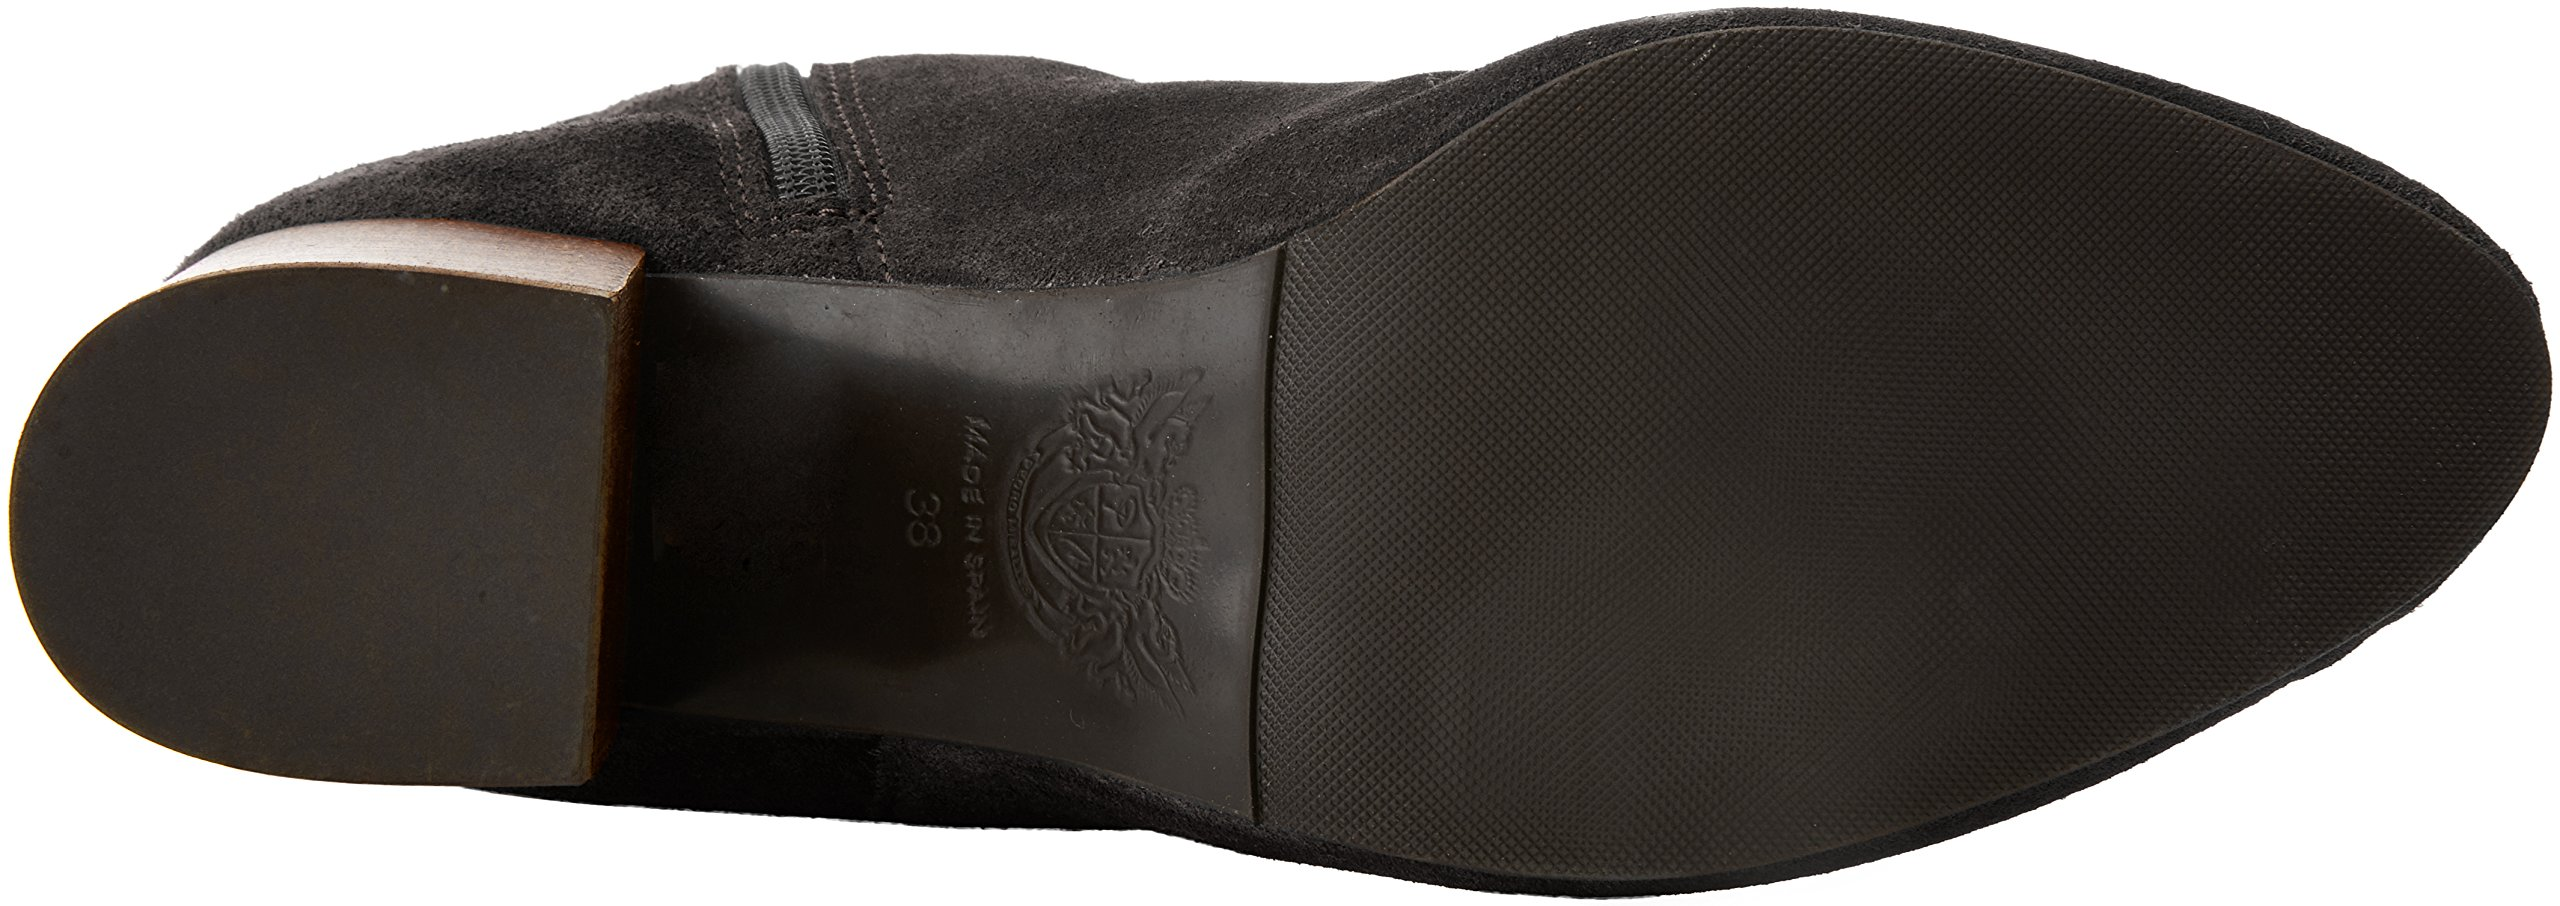 PEDRO MIRALLES 29025, Botas Slouch Mujer